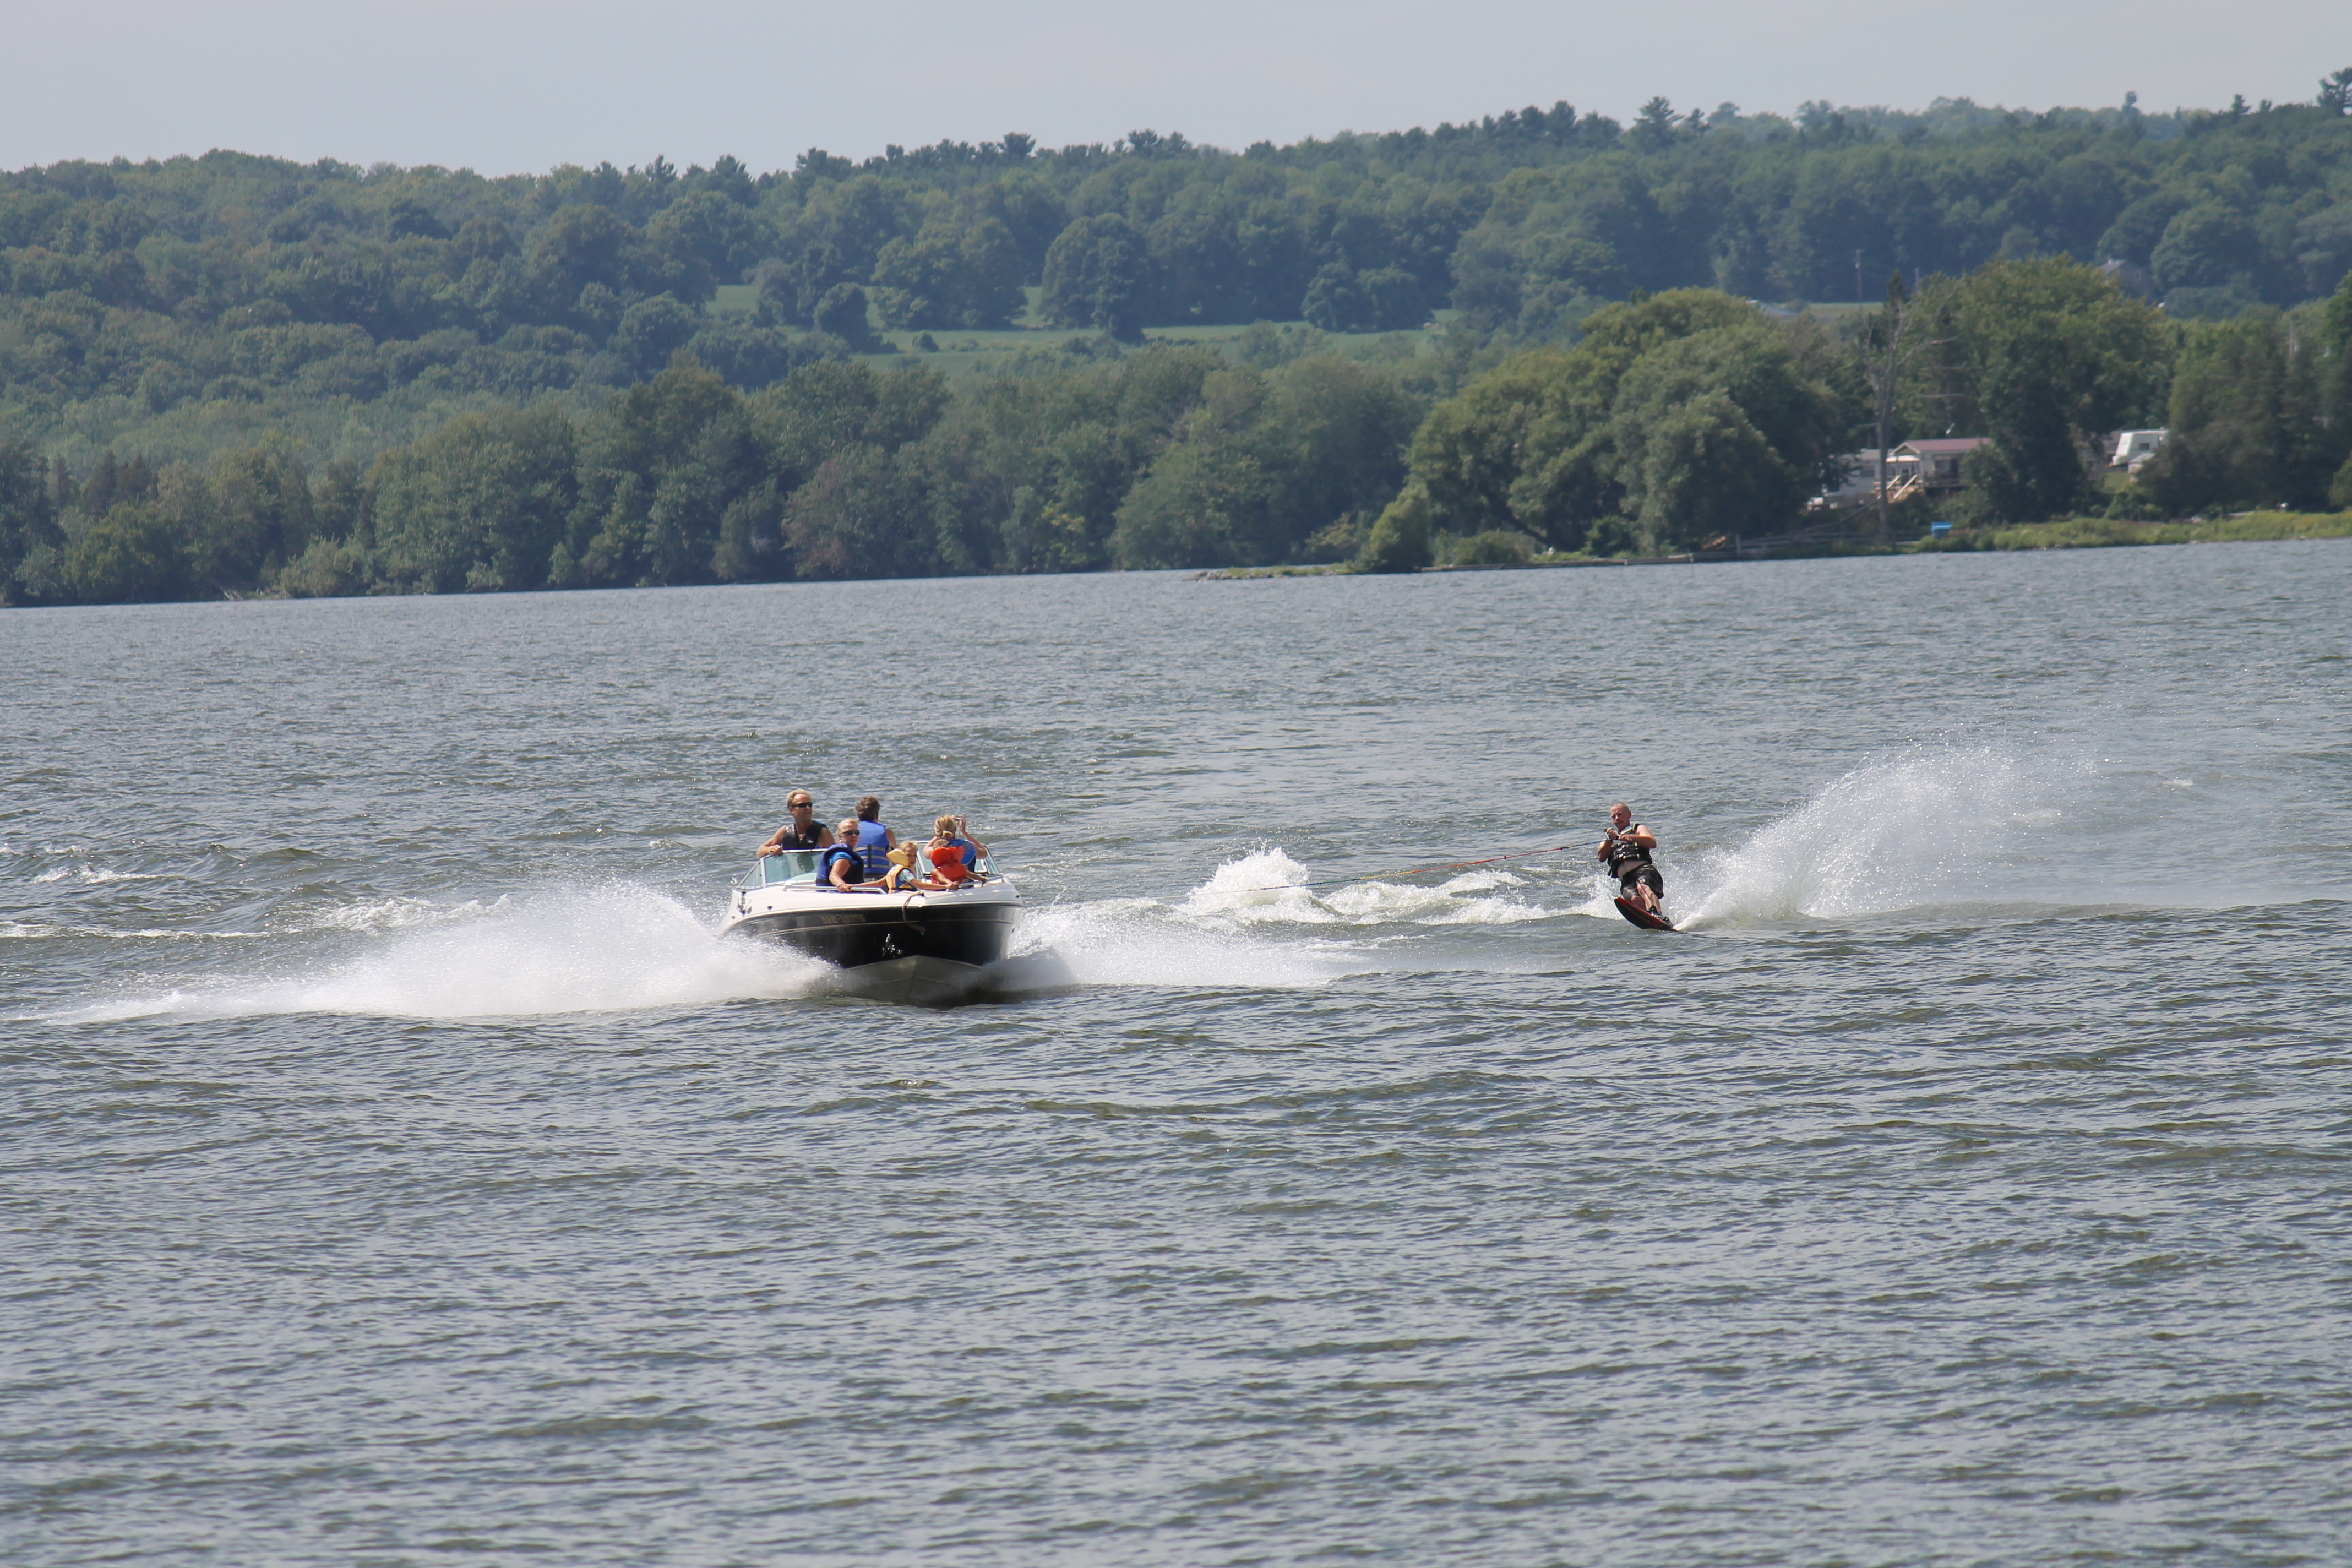 Water skiing on Rice Lake Ontario